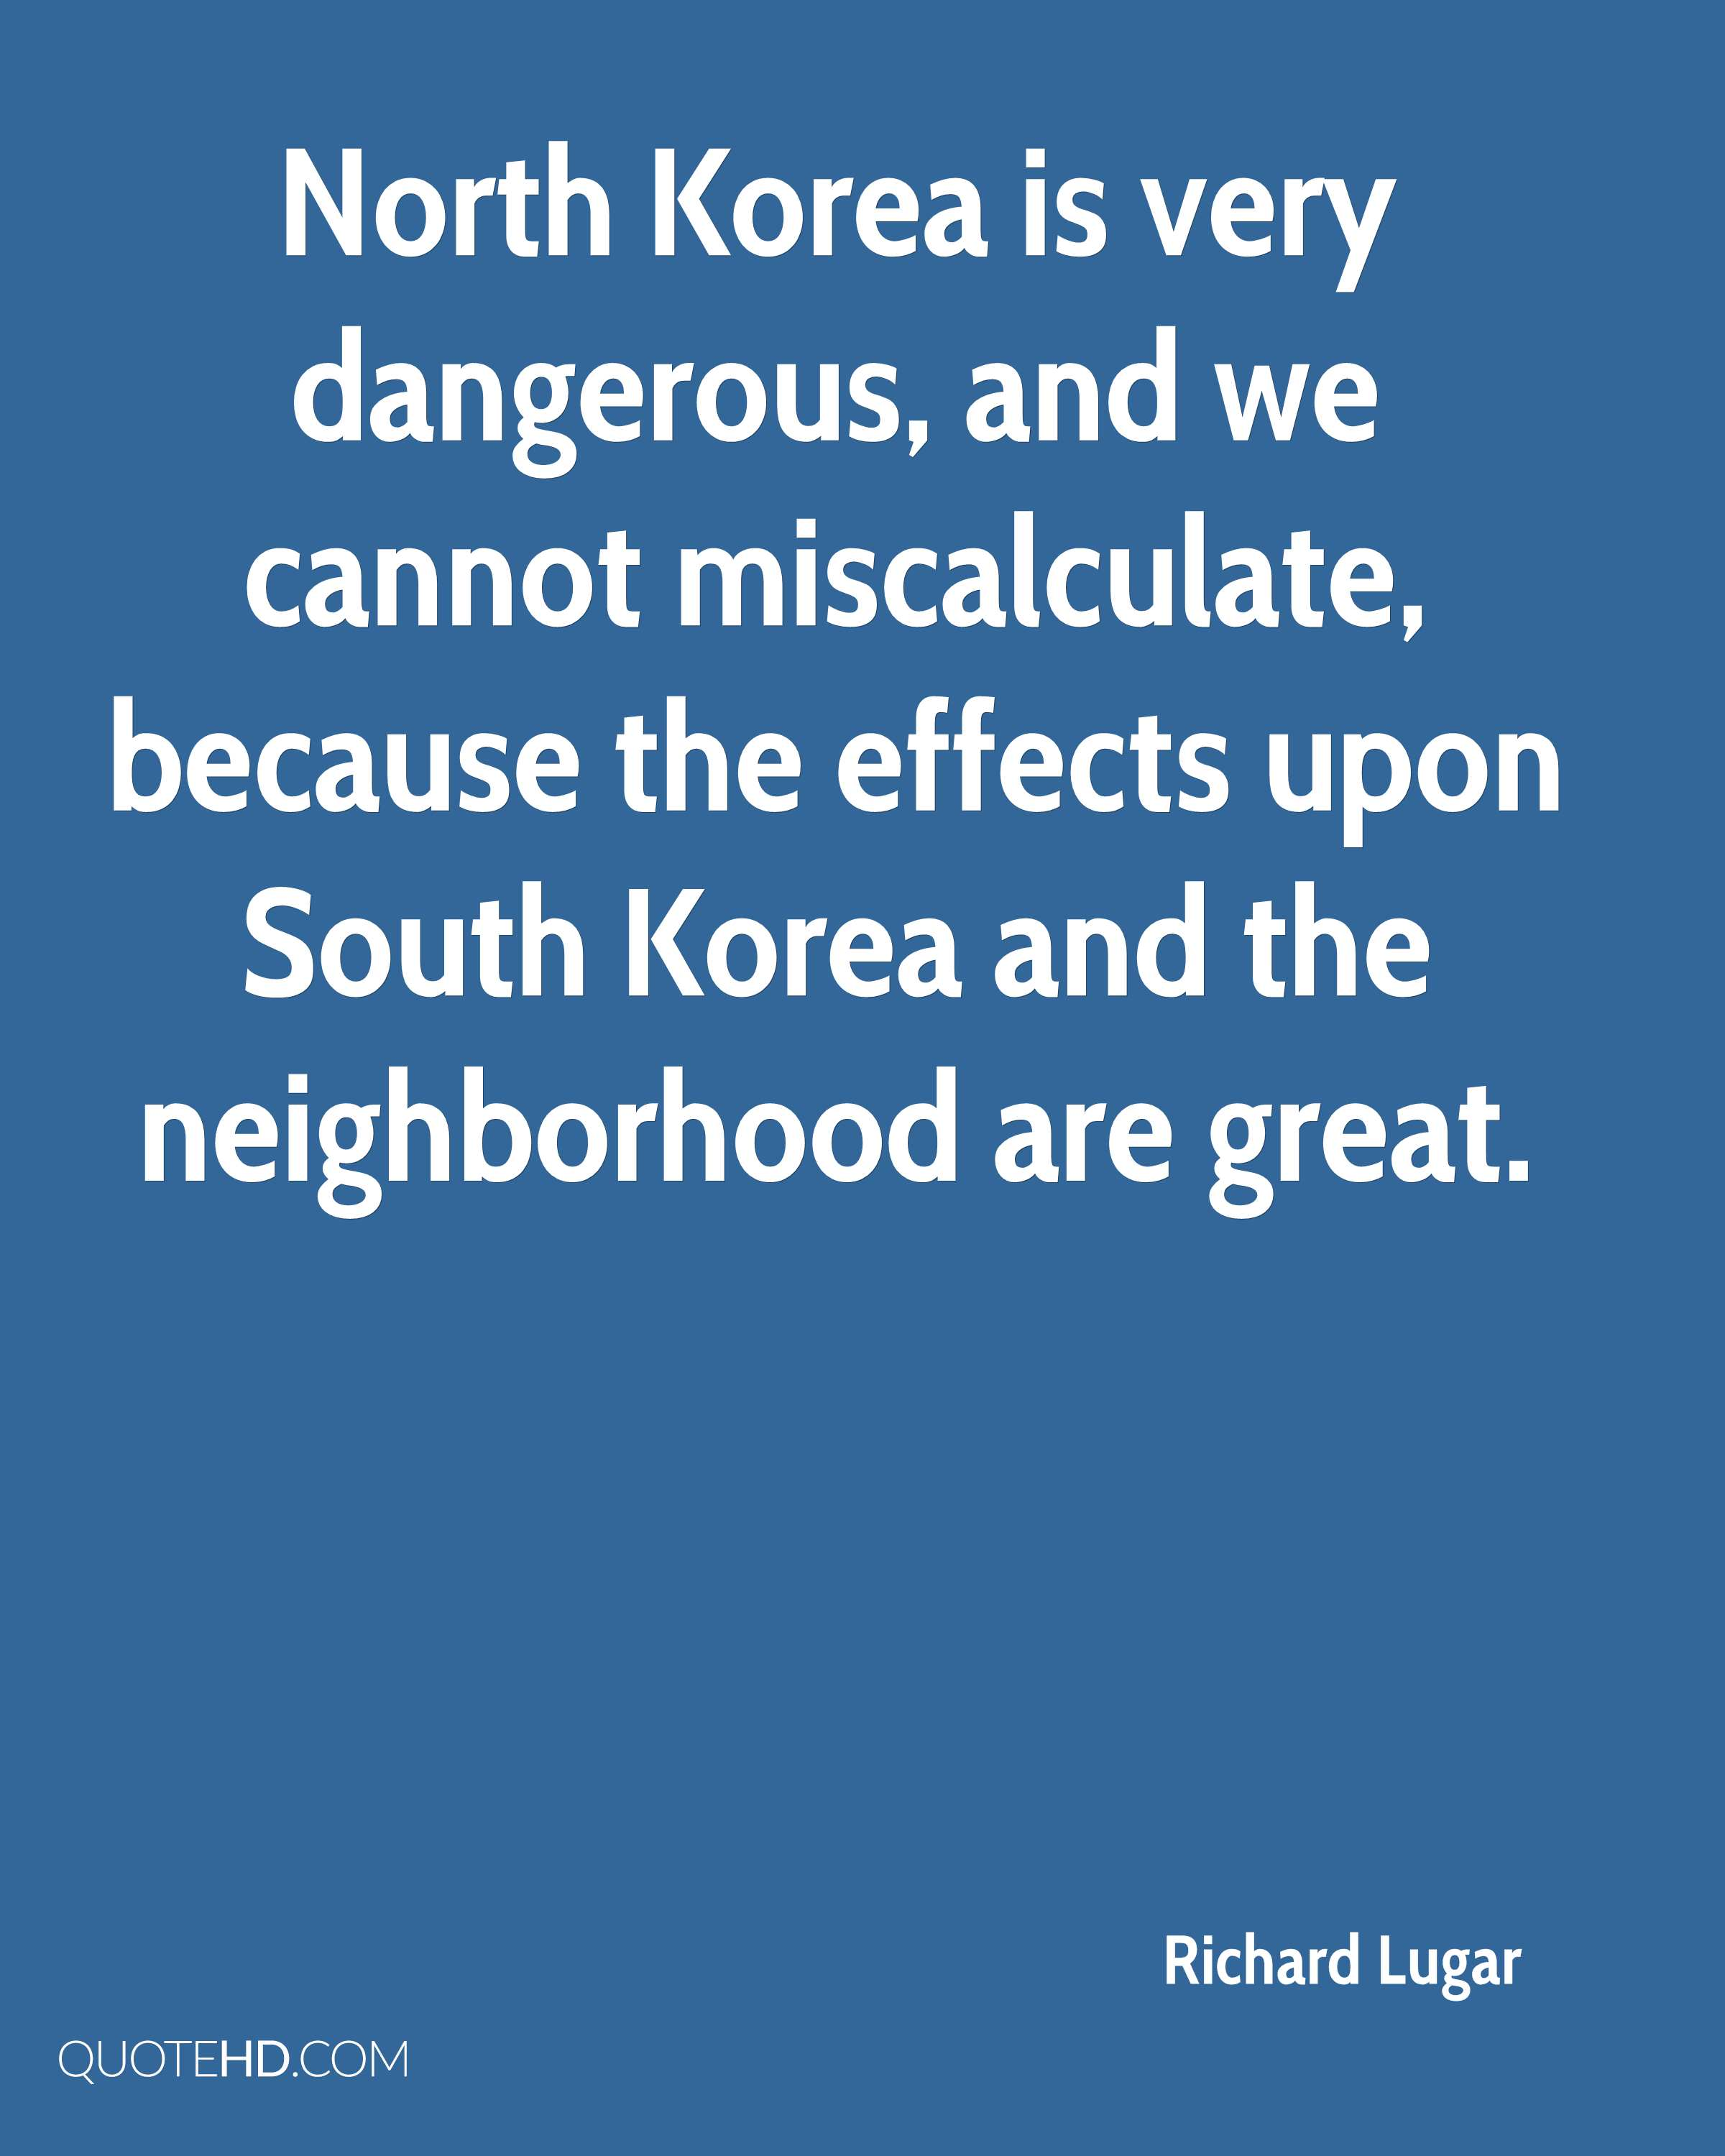 North Korea is very dangerous, and we cannot miscalculate, because the effects upon South Korea and the neighborhood are great.